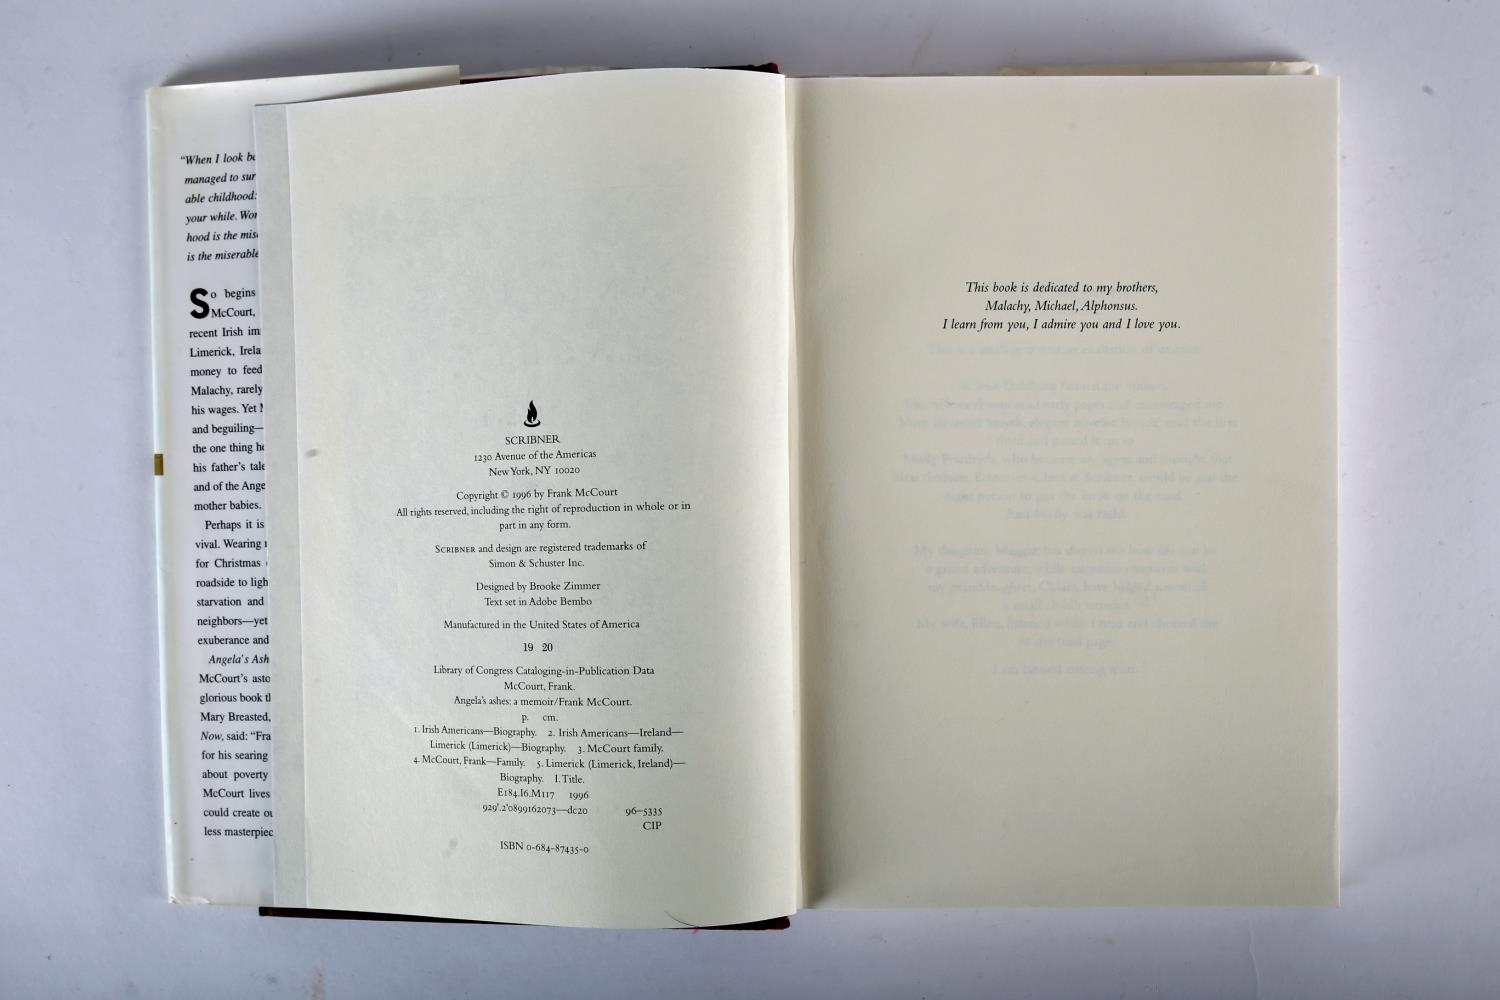 McCourt, Frank. Angela's Ashes. Scribner, New York. 1996, first edition, 8vo. red cloth gilt and - Image 2 of 4